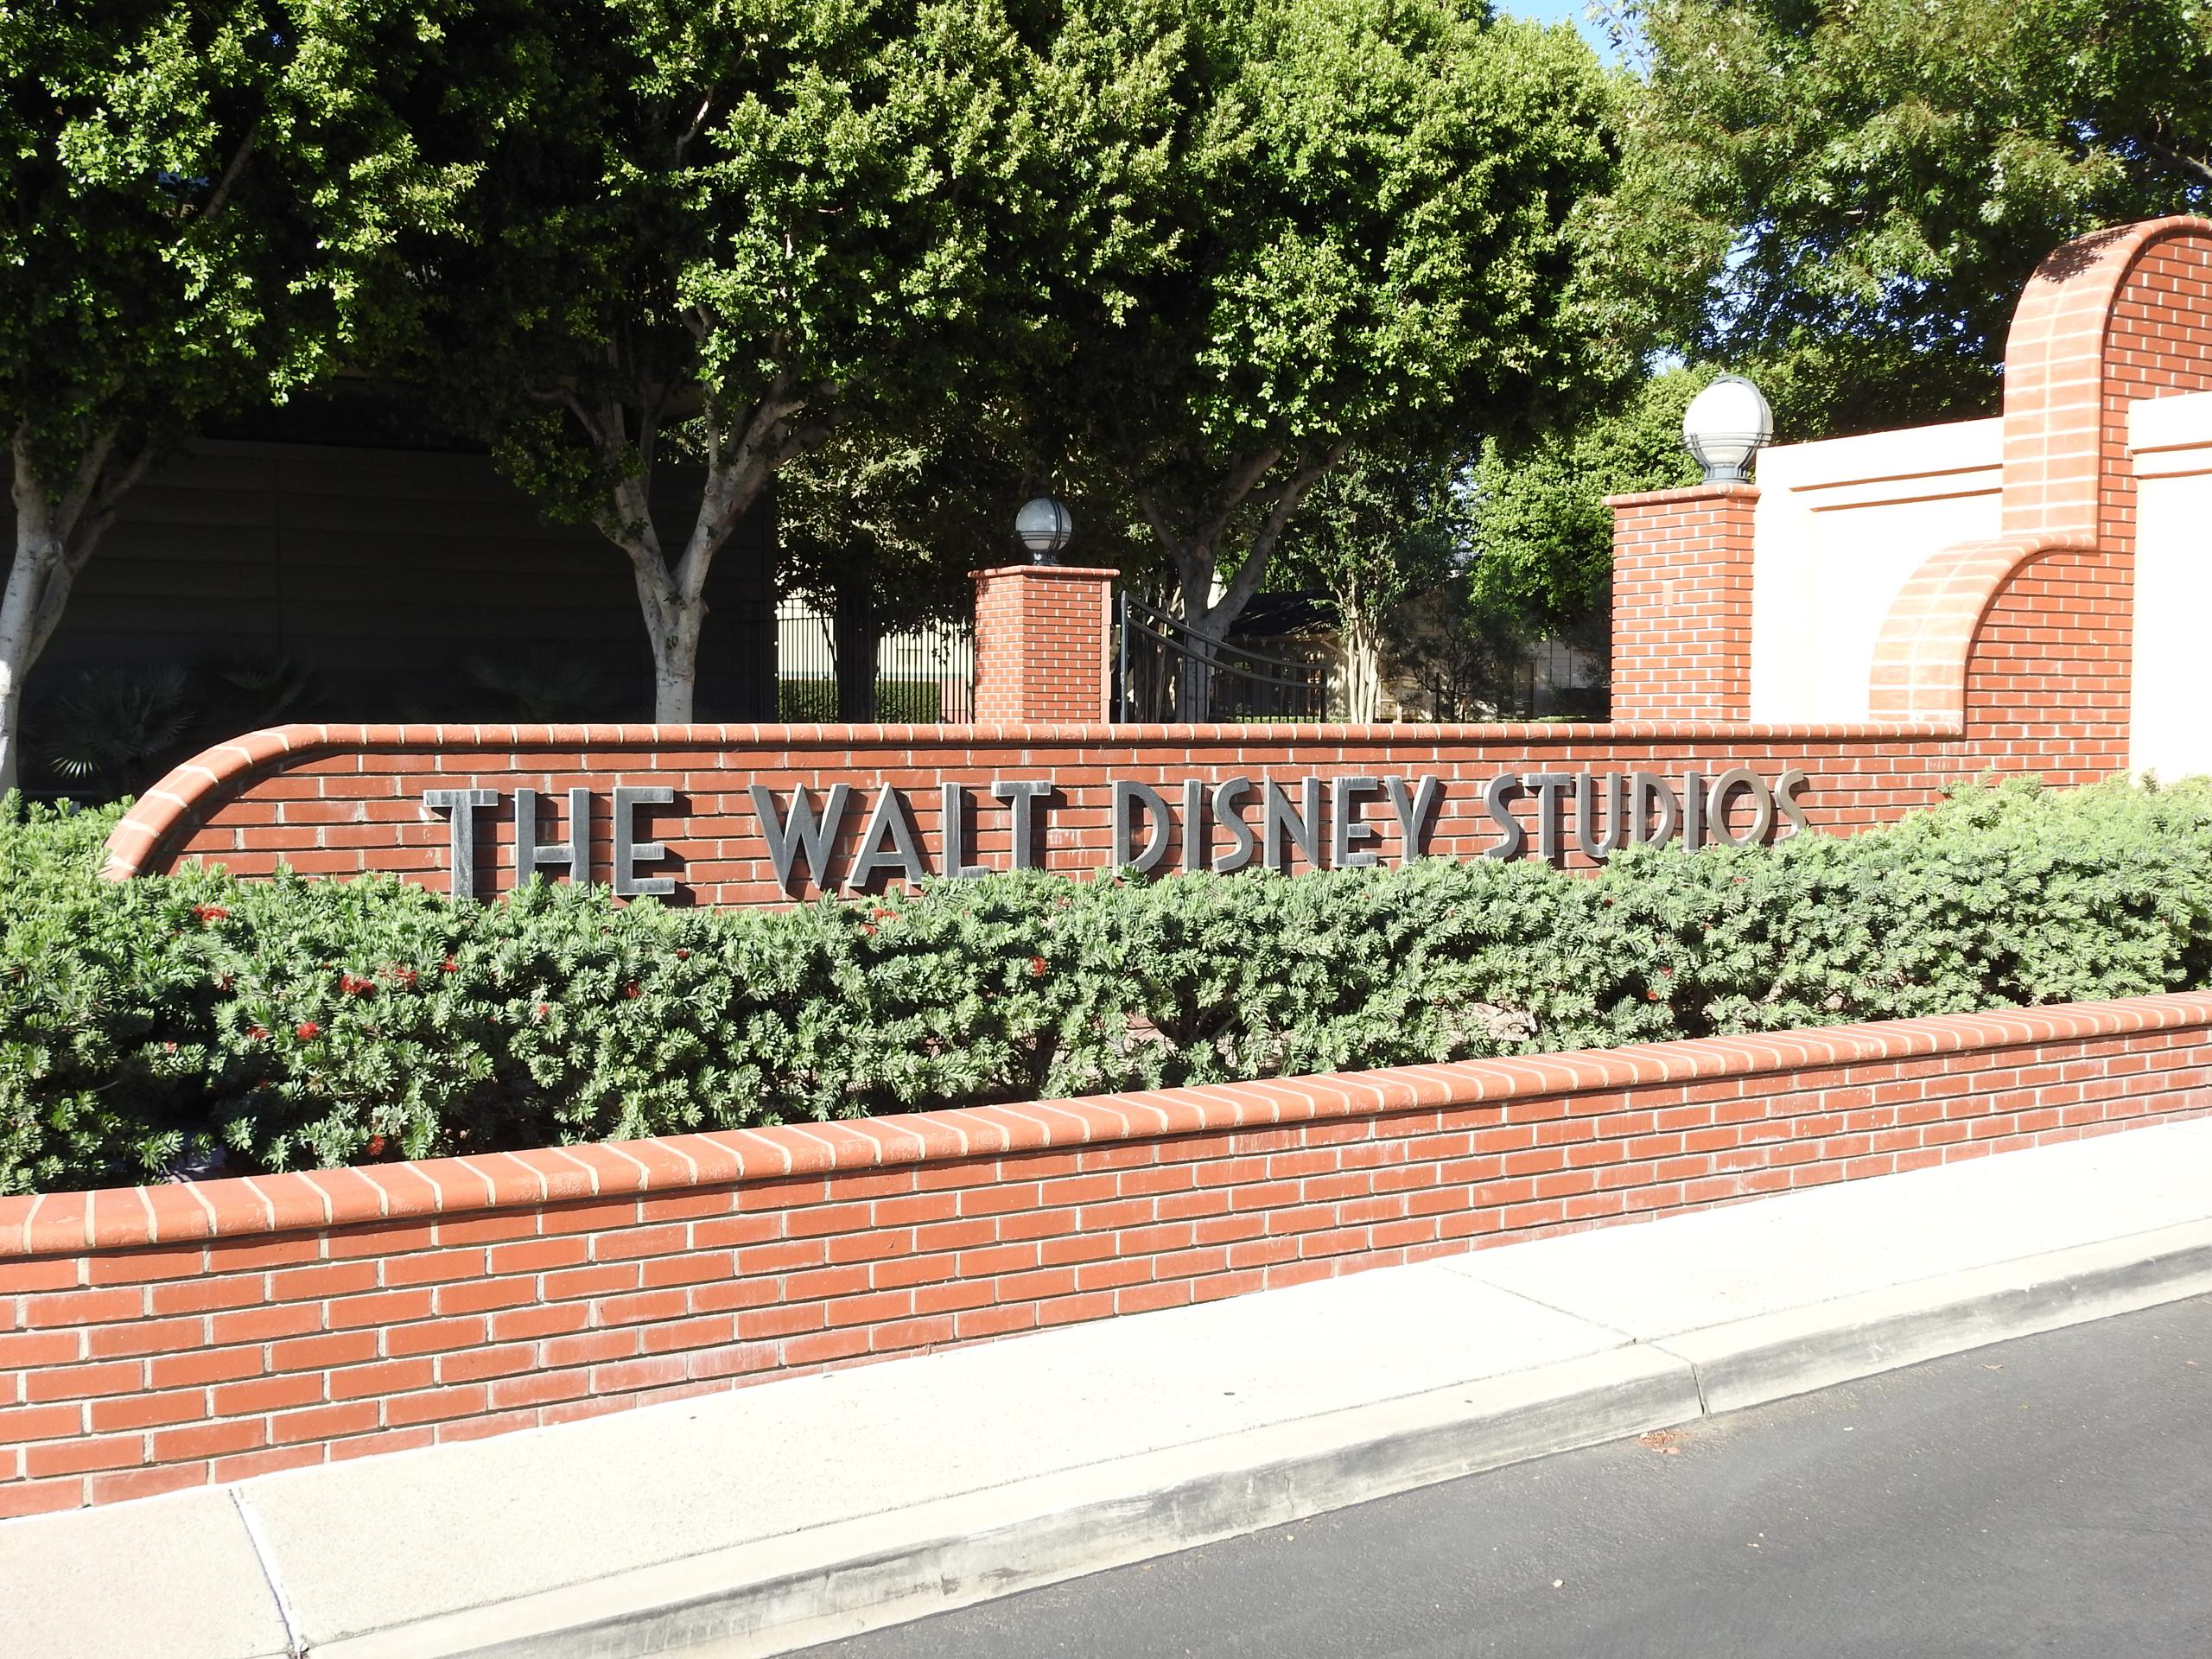 Entrance to The Walt Disney Company's headquarters in Burbank, California.